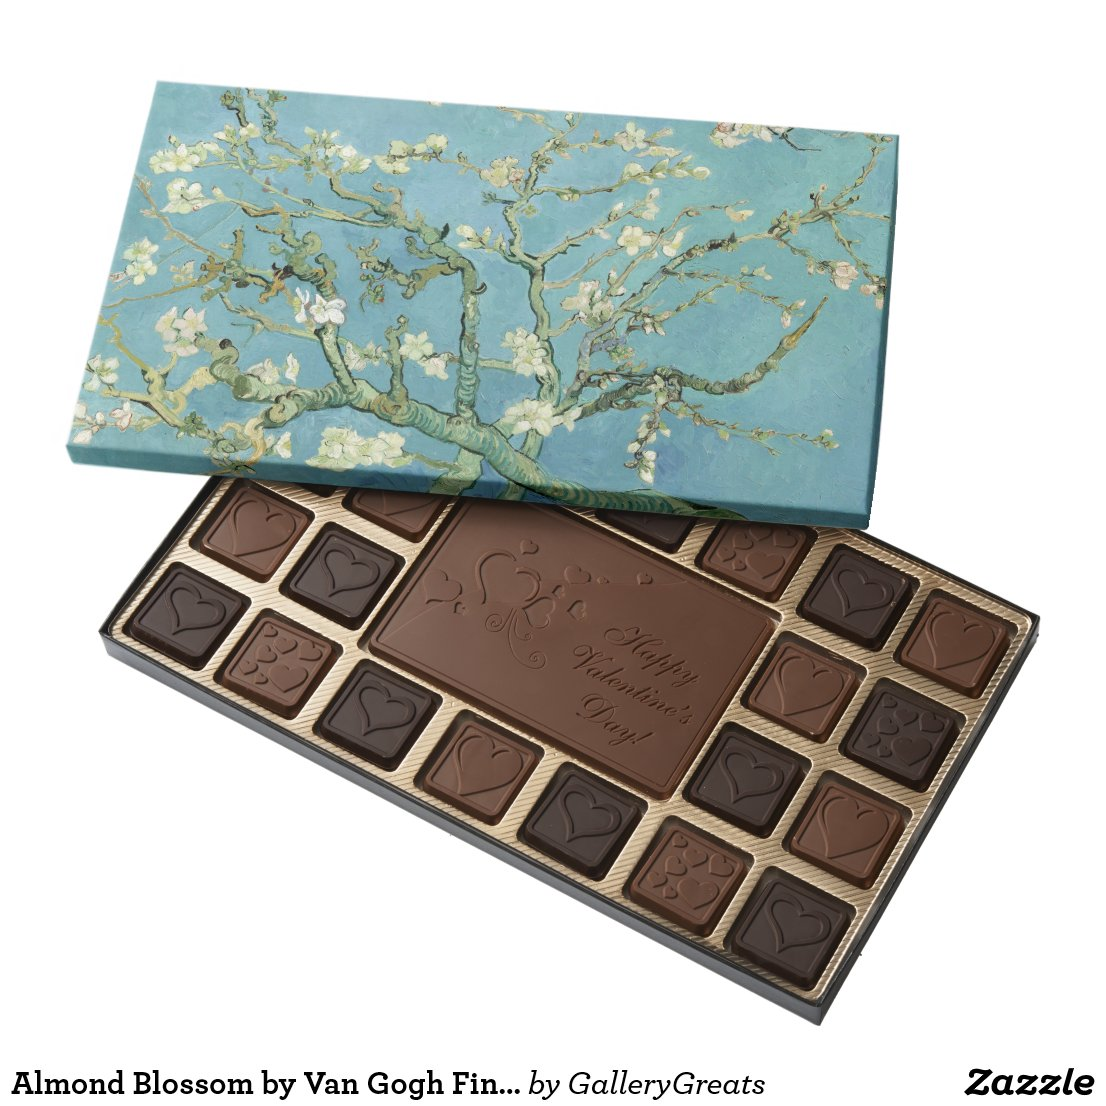 Almond Blossom by Van Gogh Fine Art Assorted Chocolates